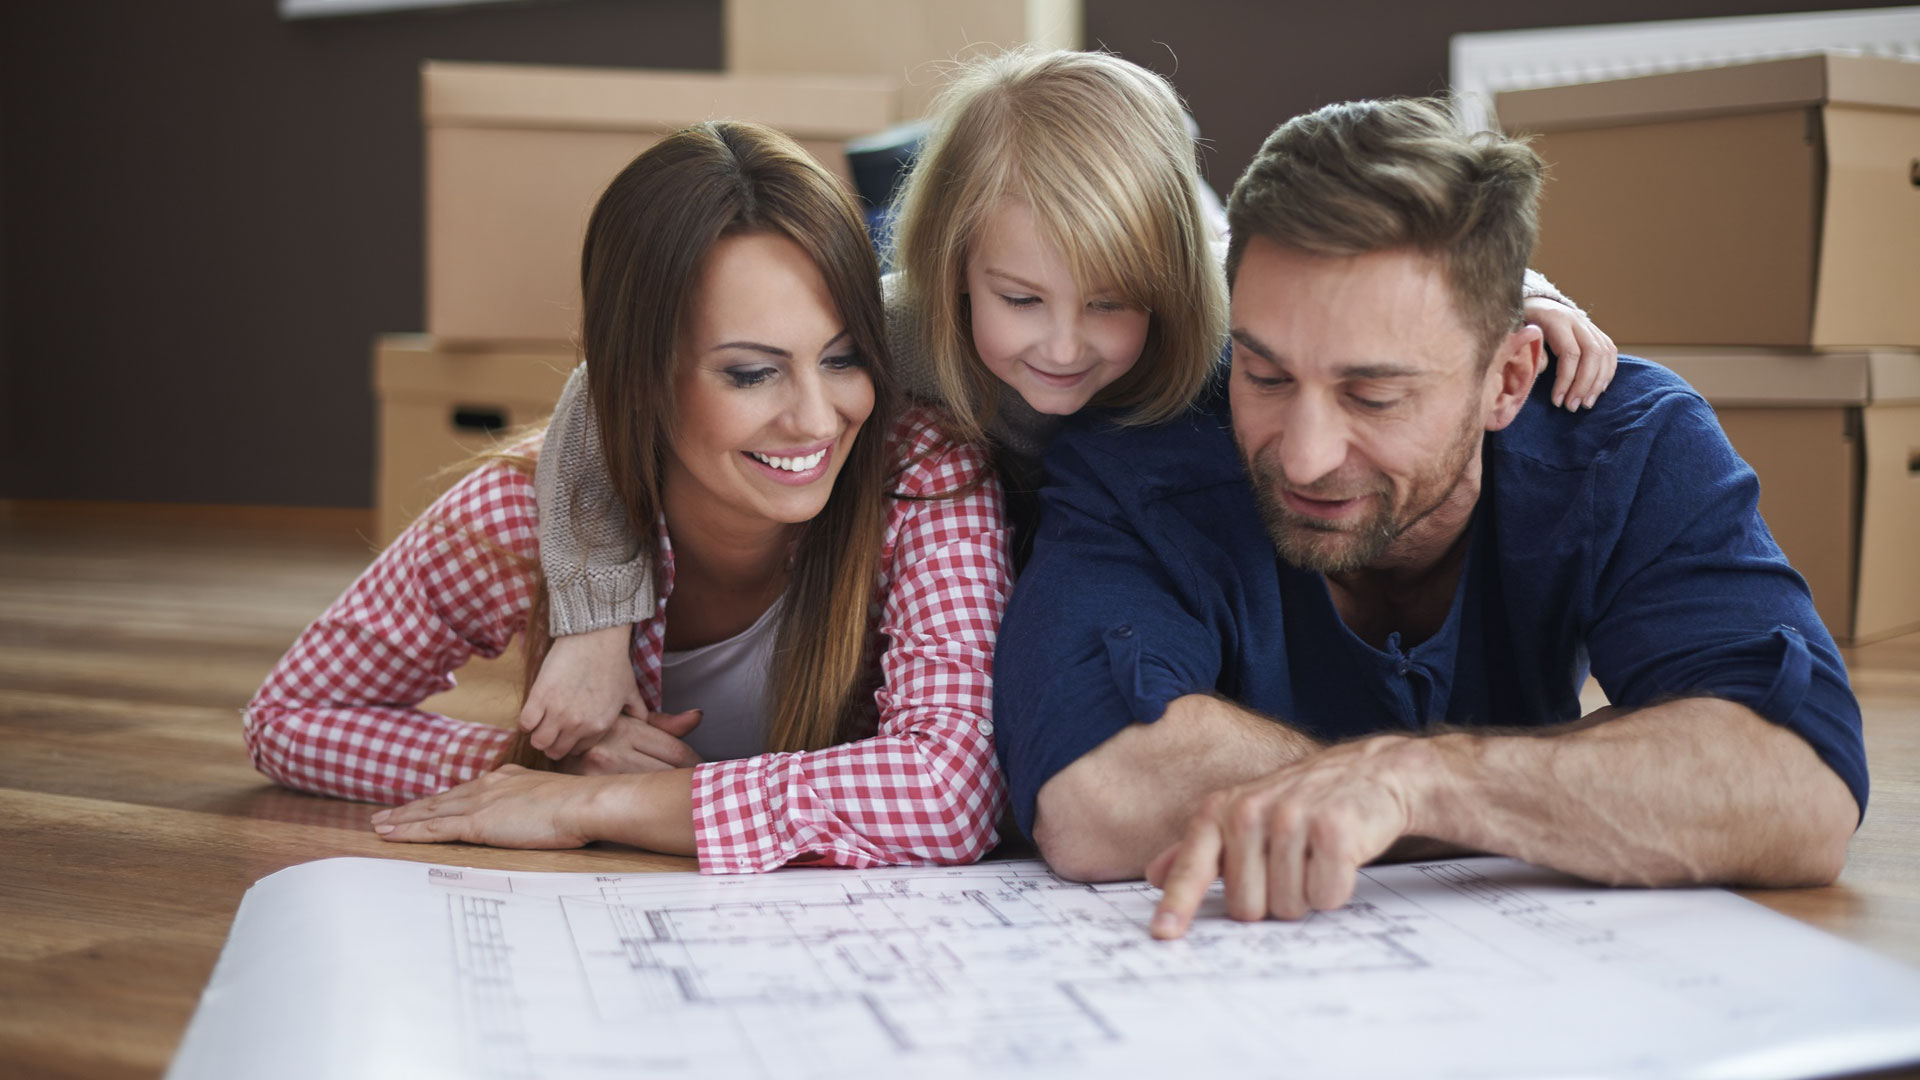 Family looking at House plans